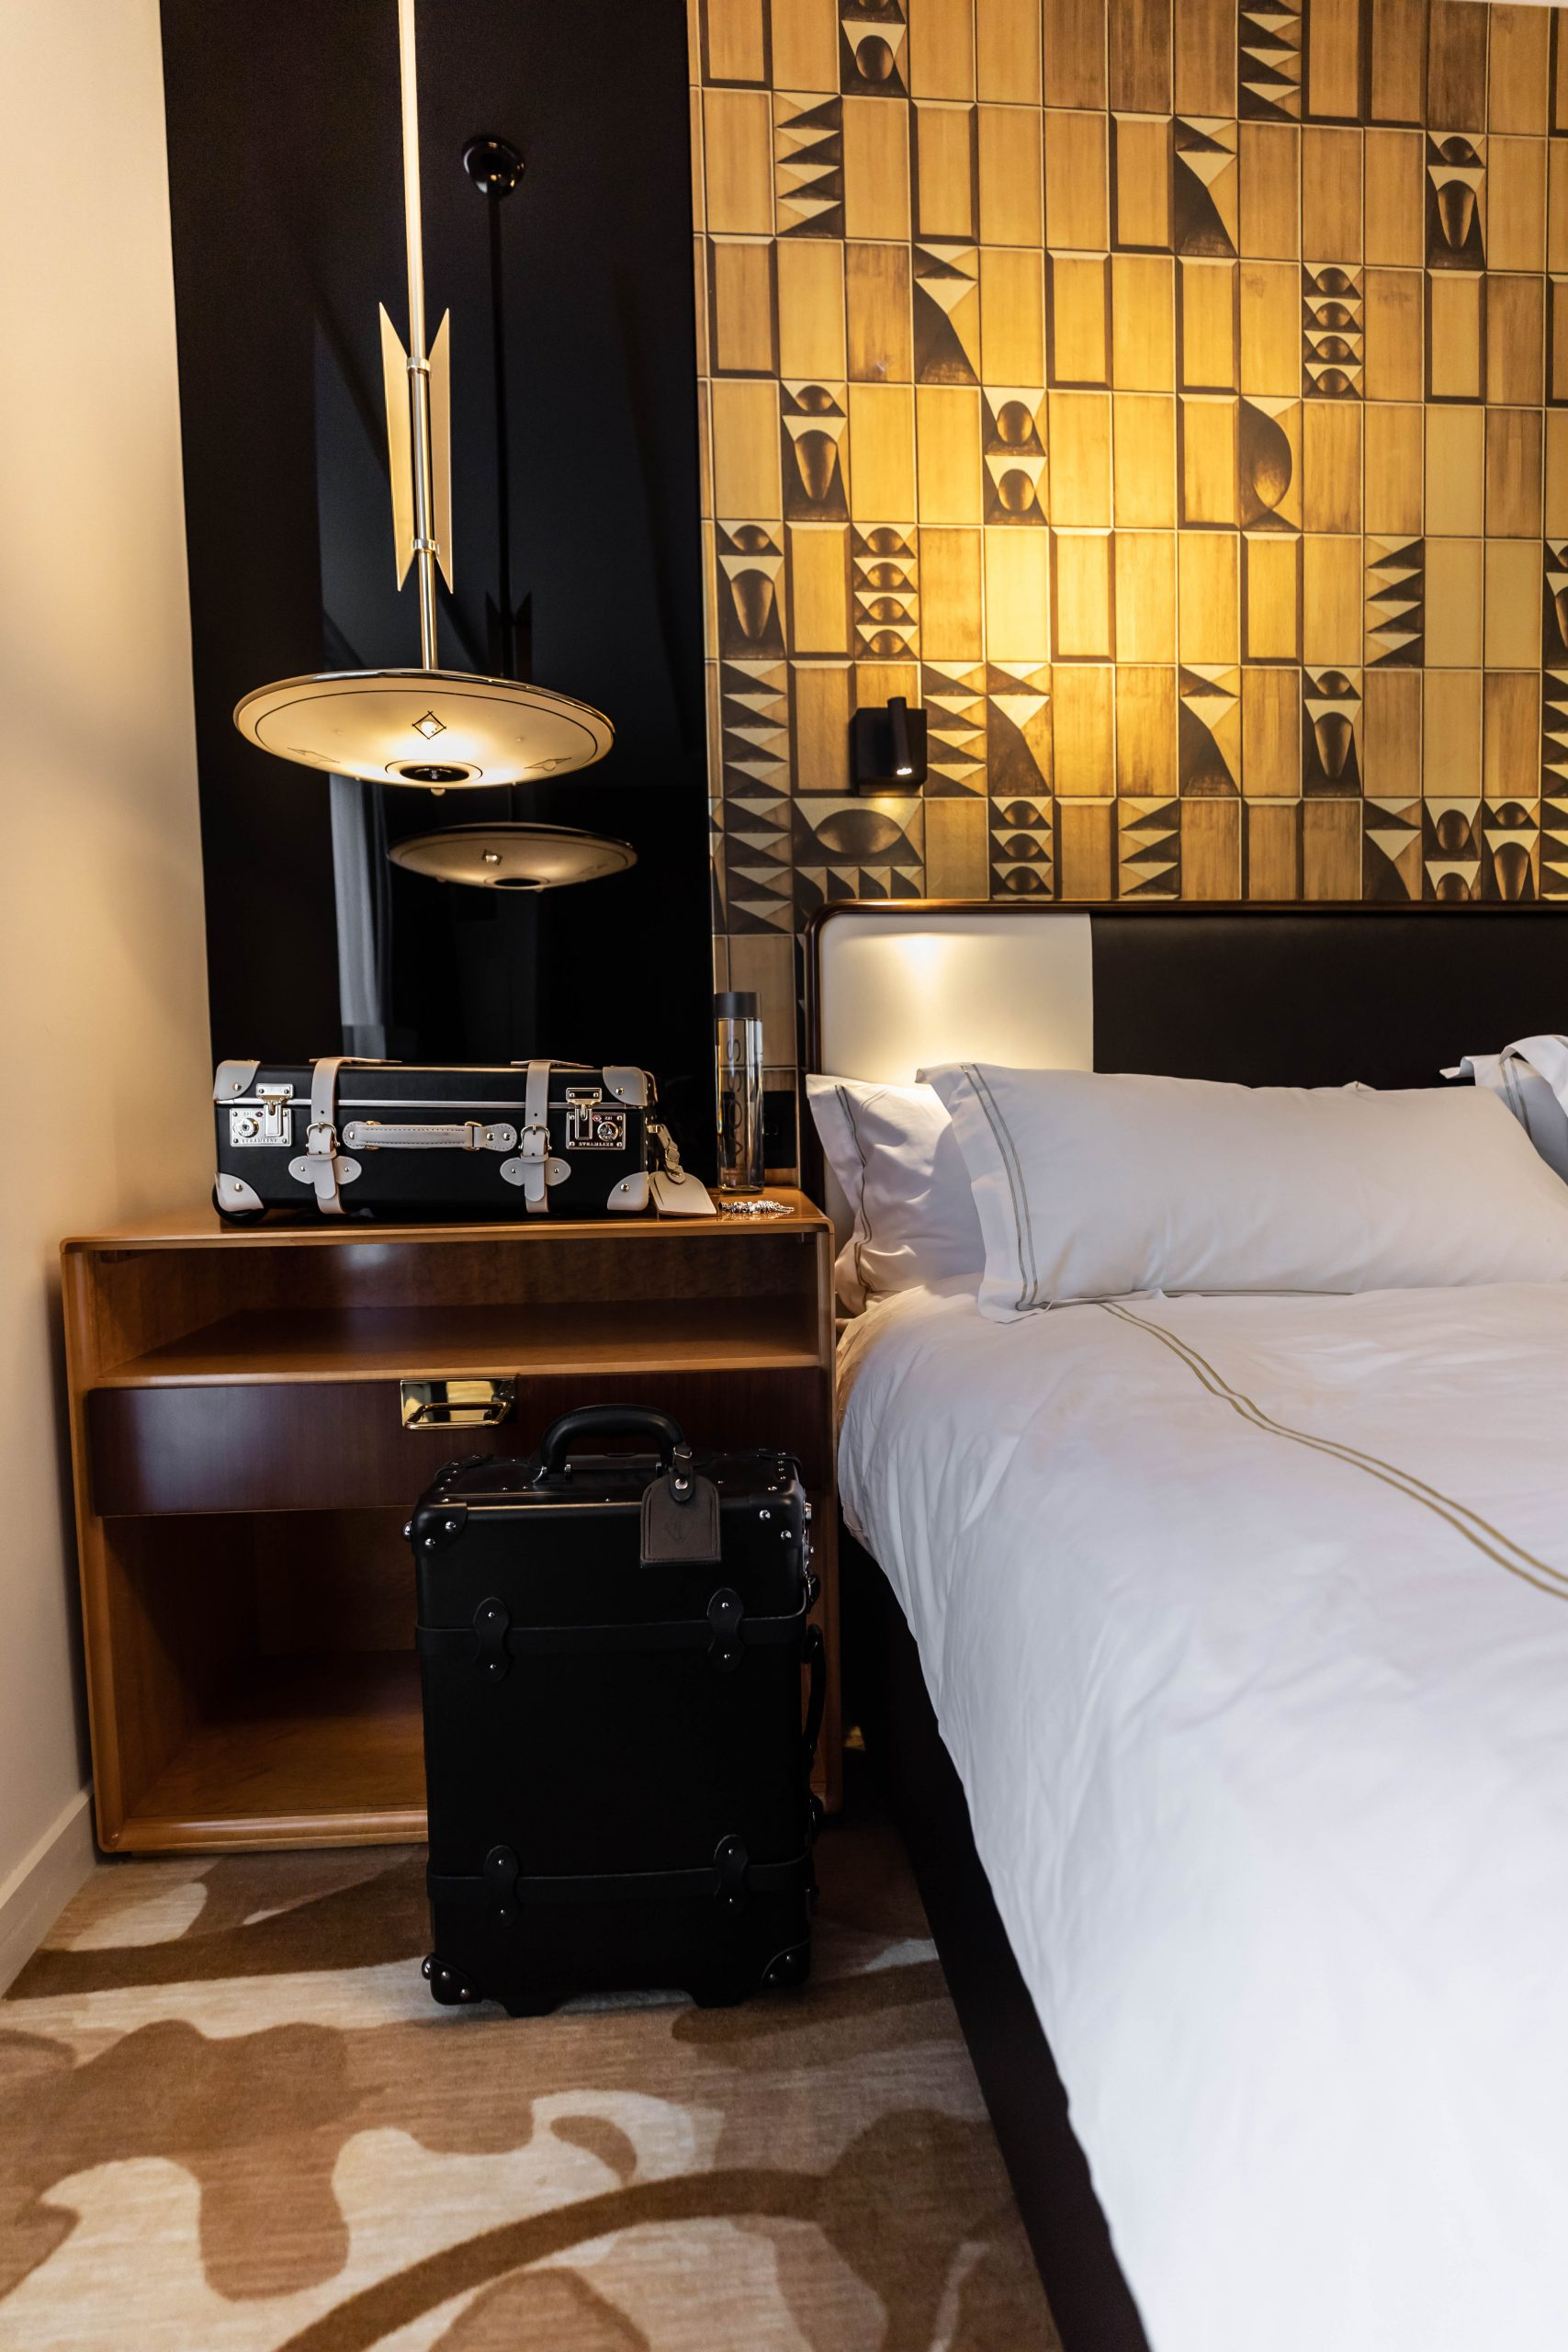 Viceroy Chicago 5-Star Luxury Hotel in Historic Gold Coast District Illinois Midwest Luxury Hotels by Annie Fairfax Where to Stay in Chicago